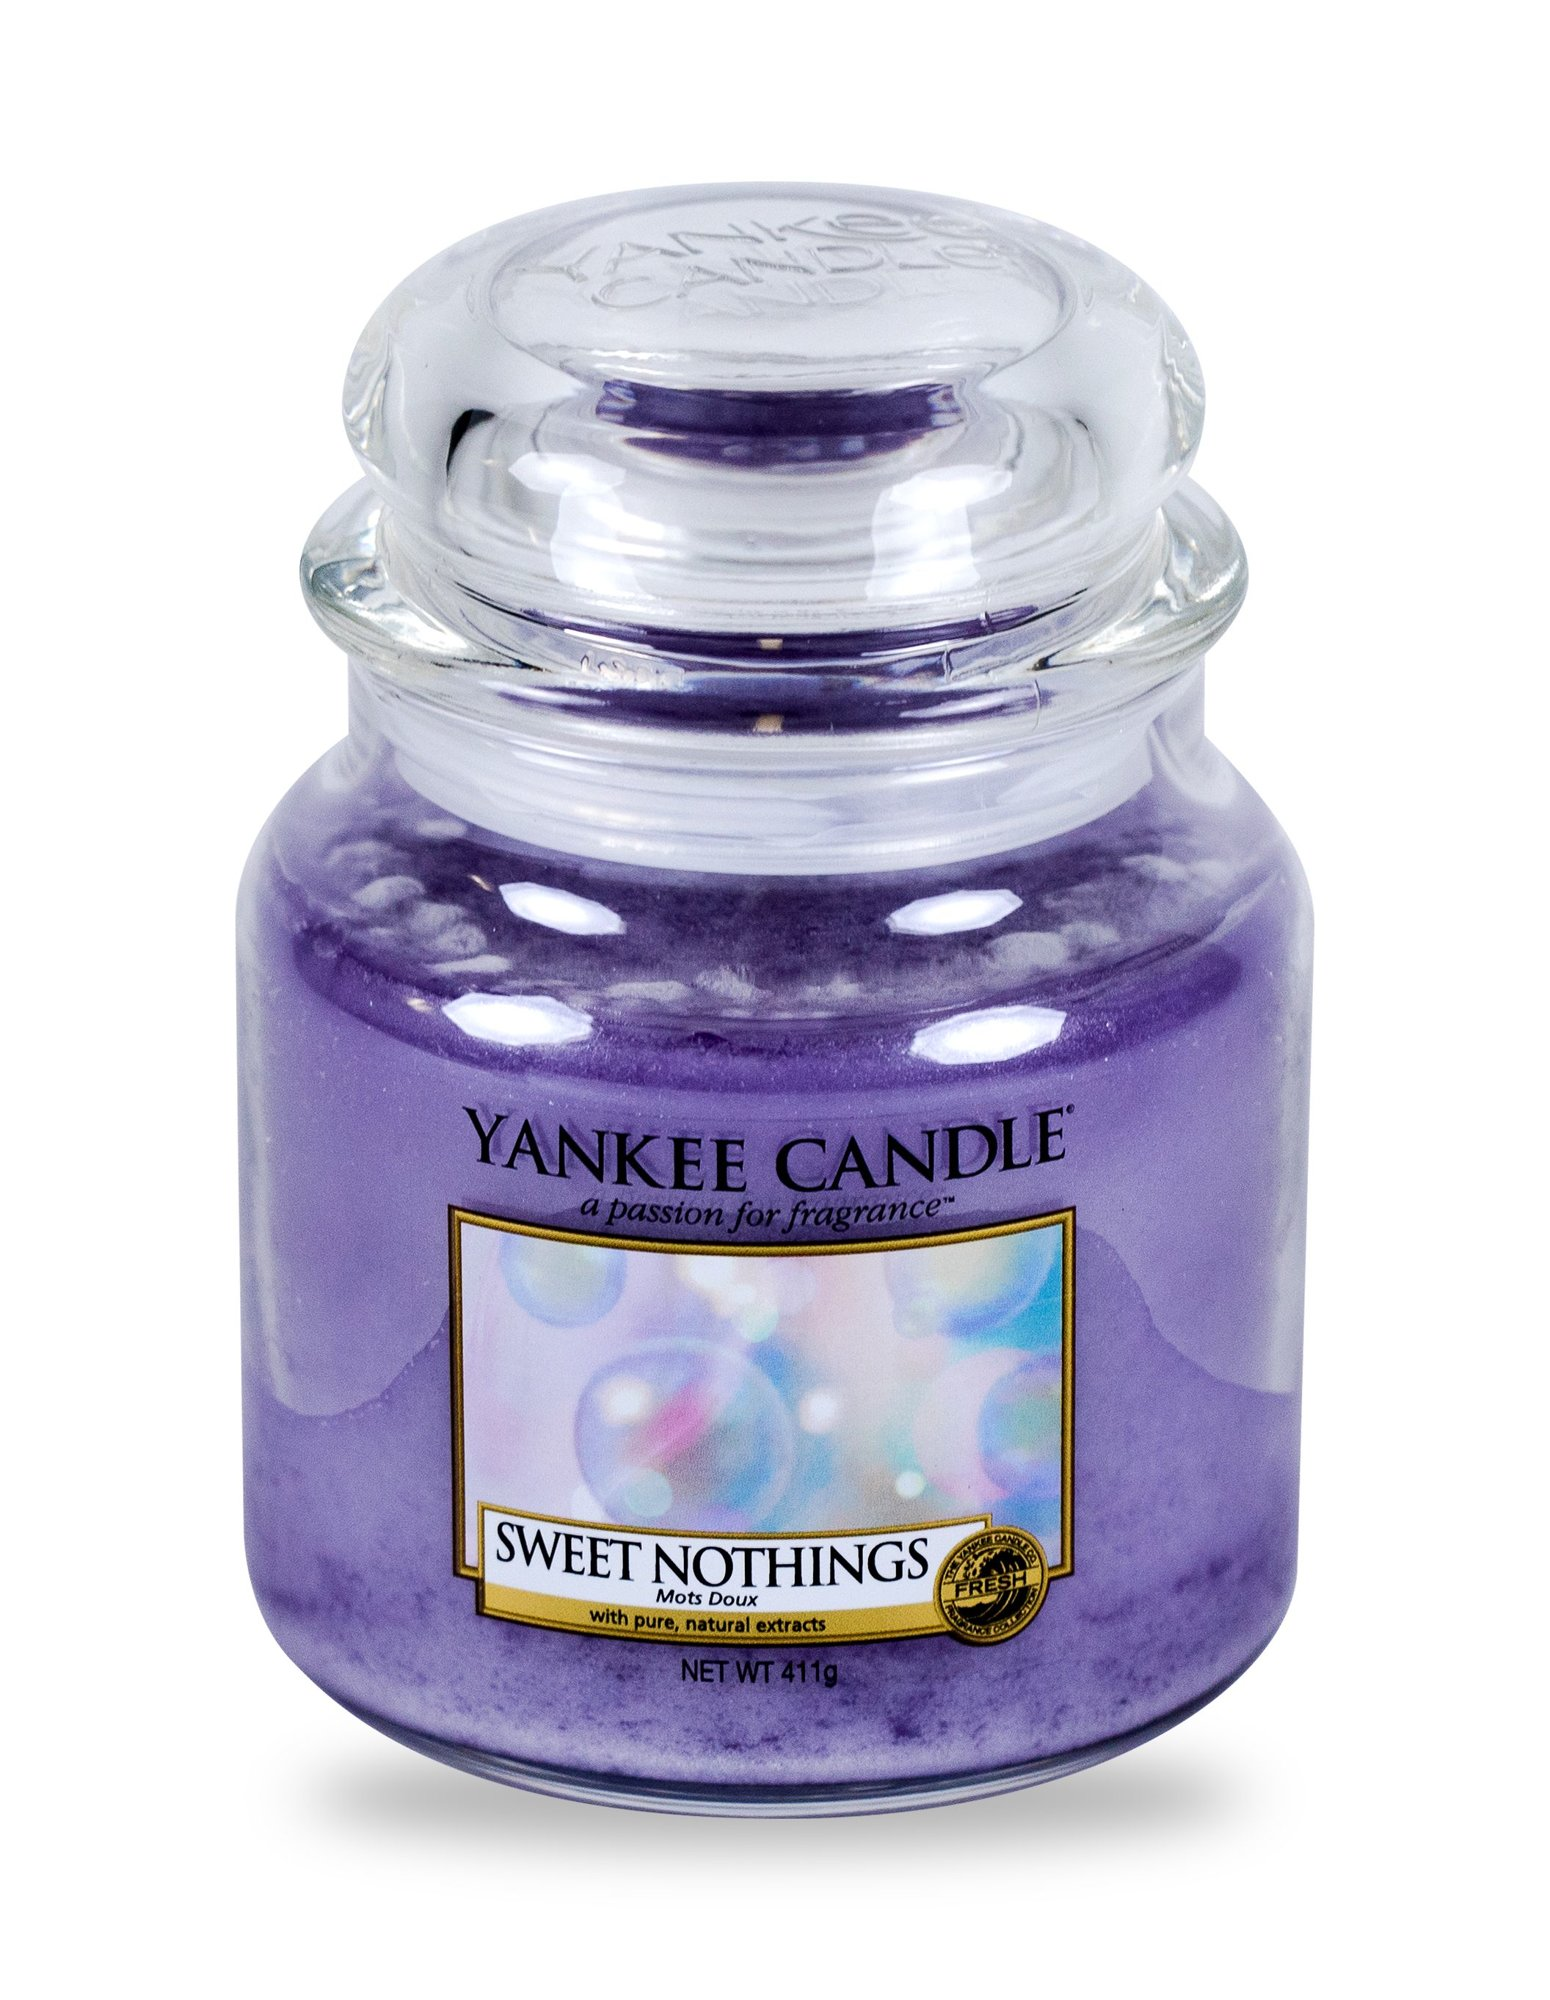 Yankee Candle Sweet Nothings Scented Candle 411ml